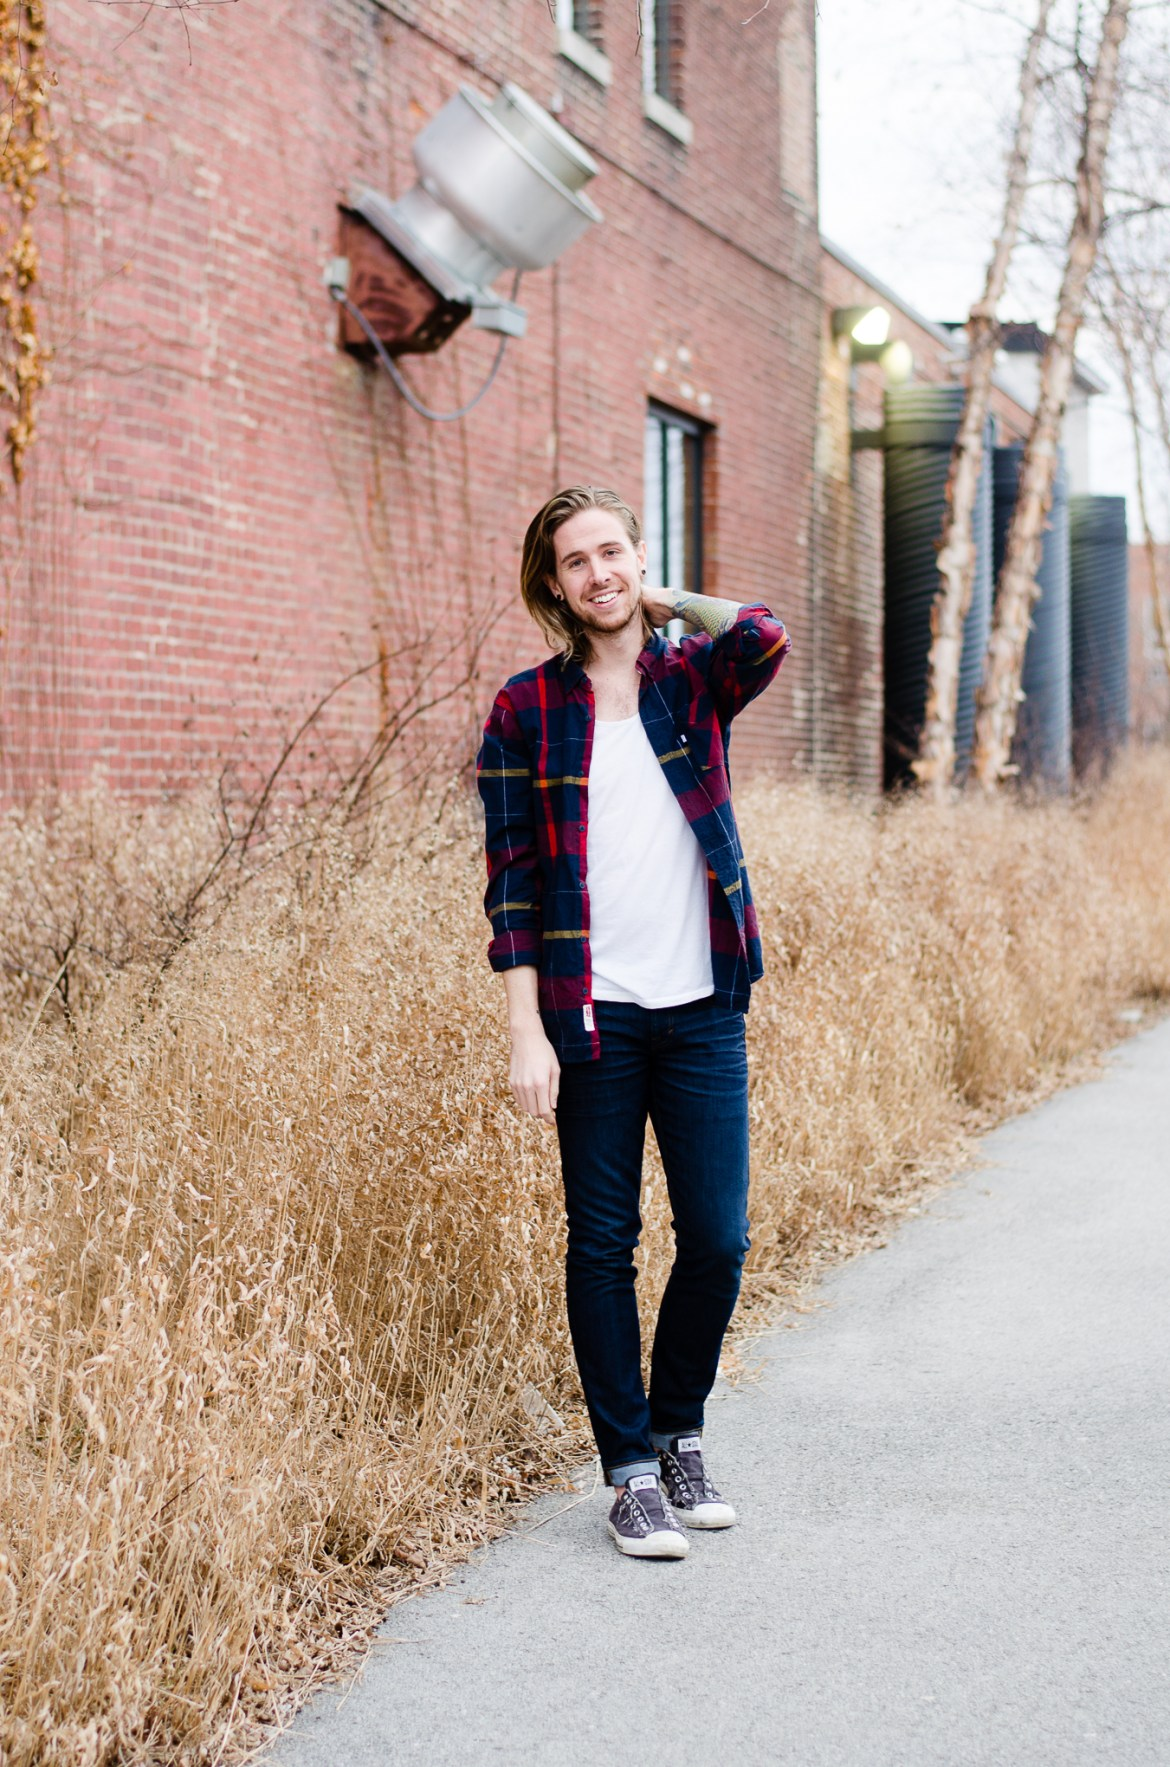 The Kentucky Gent, a men's fashion and lifestyle blogger, dishes on a picture perfect life.